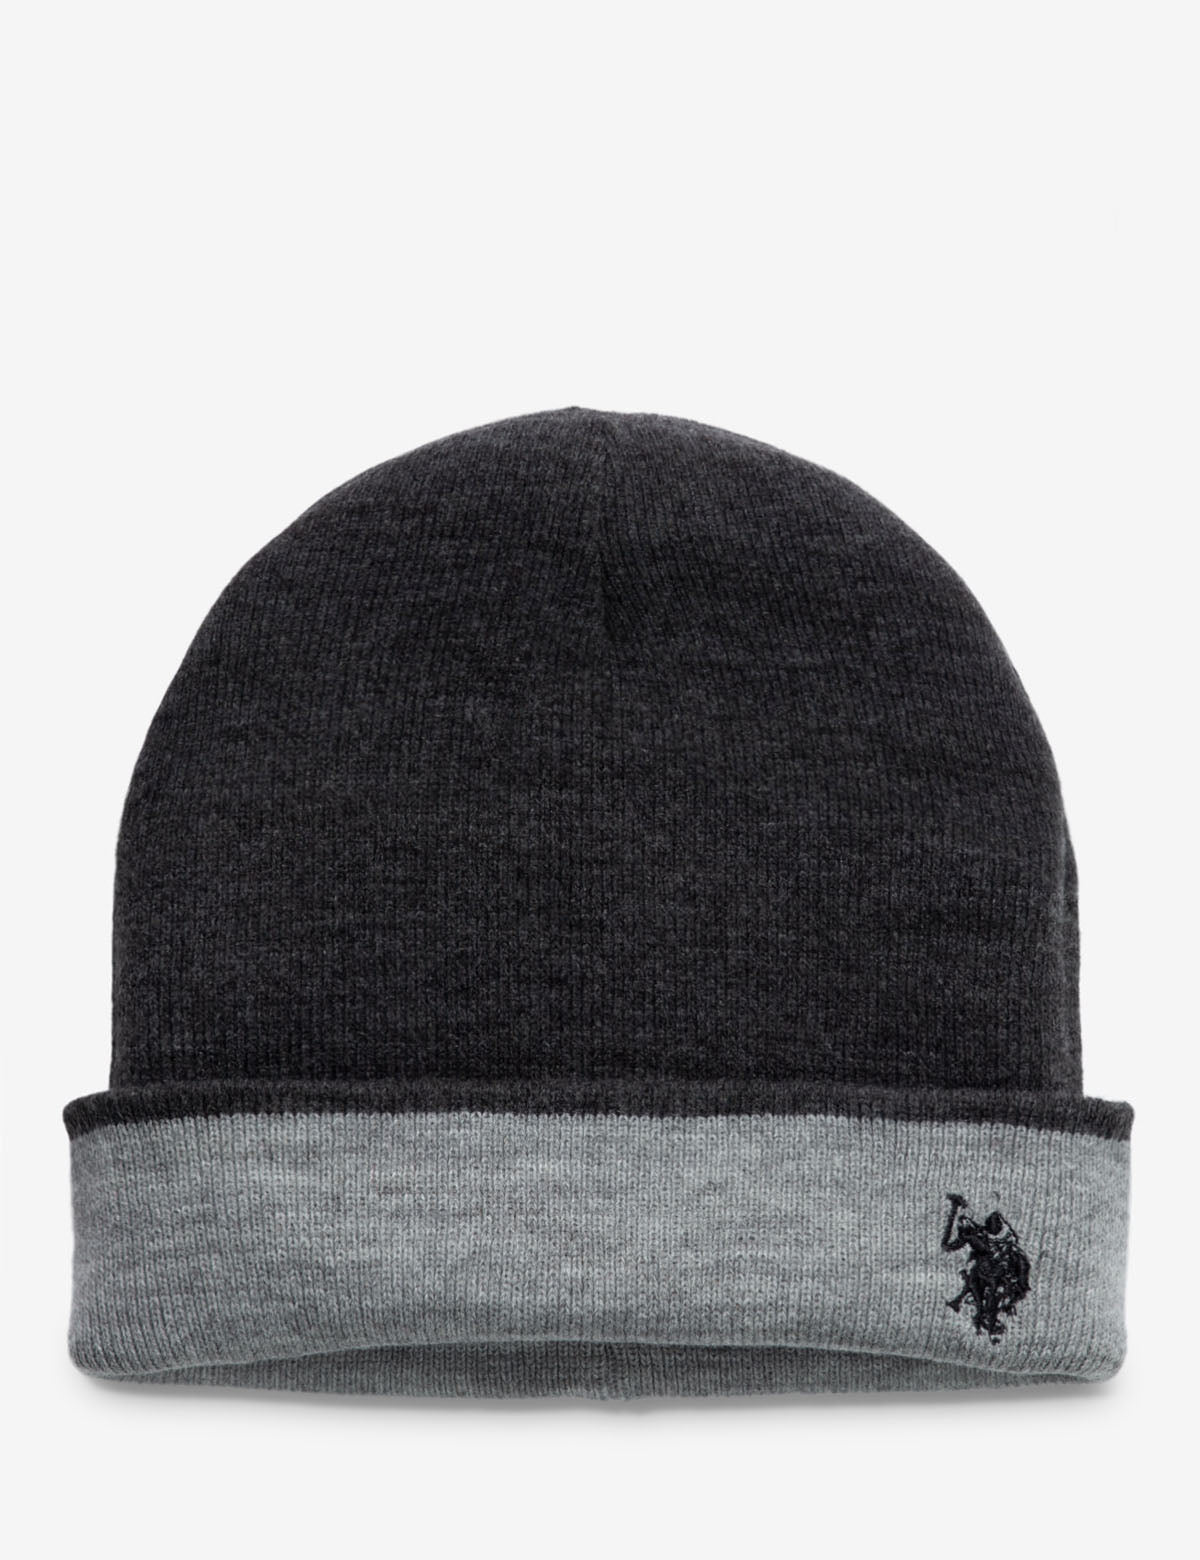 REVERSIBLE STRIPED CUFF BEANIE - U.S. Polo Assn.